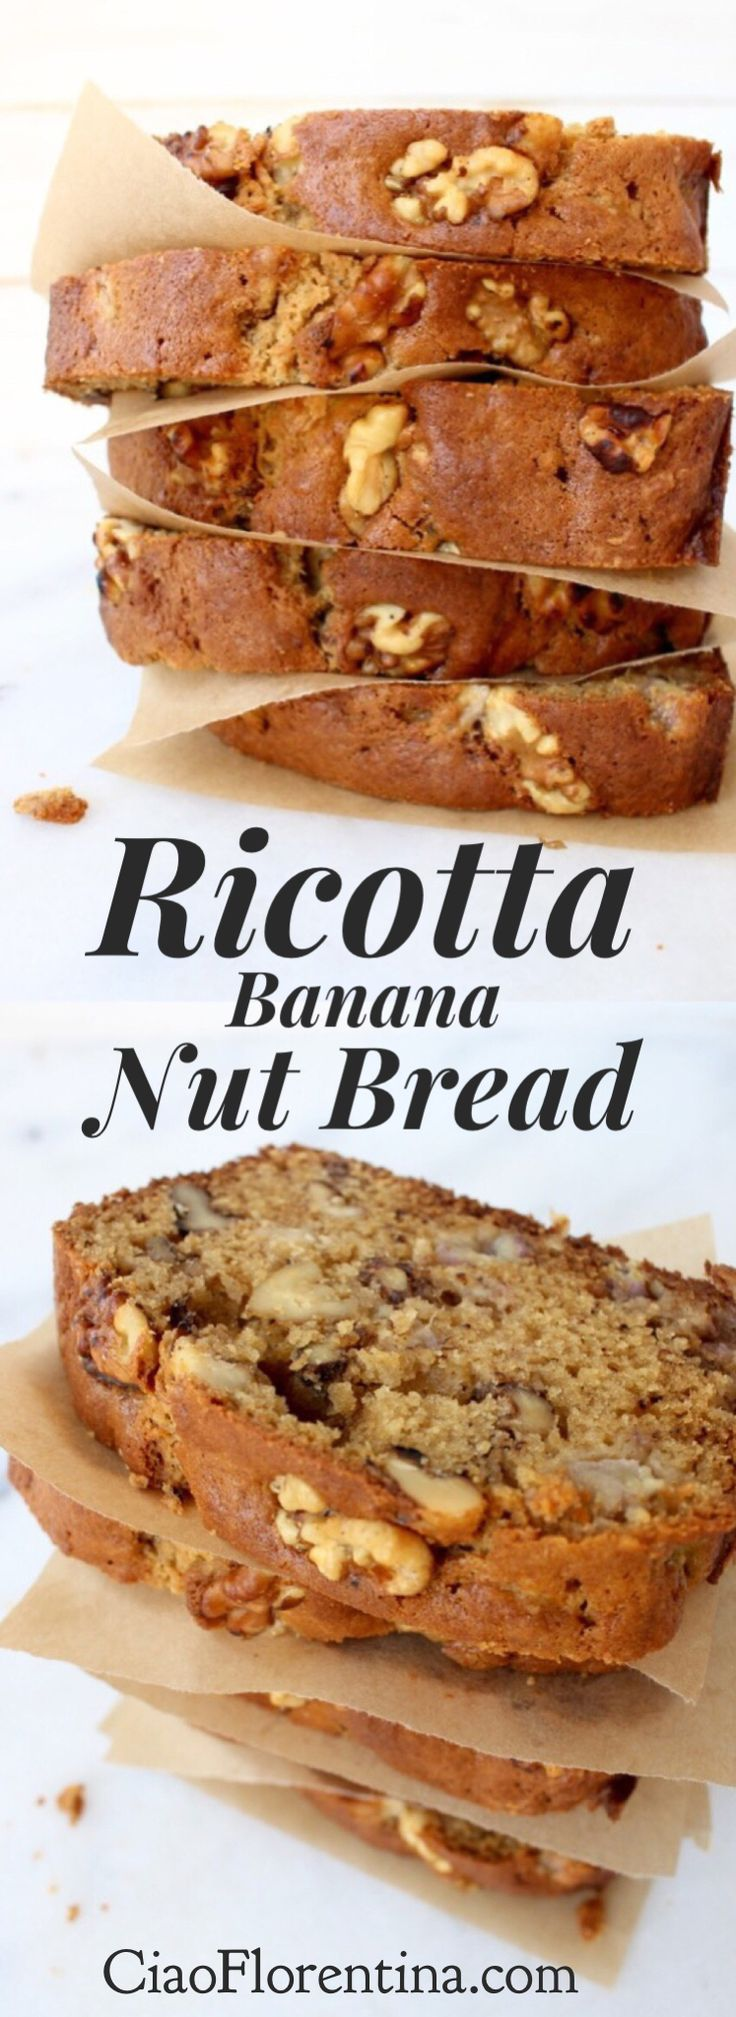 Best Banana Nut Bread Recipe of all time, easy and moist from ricotta cheese and olive oil, loaded with nutty candied walnuts | CiaoFlorentina.com @CiaoFlorentina